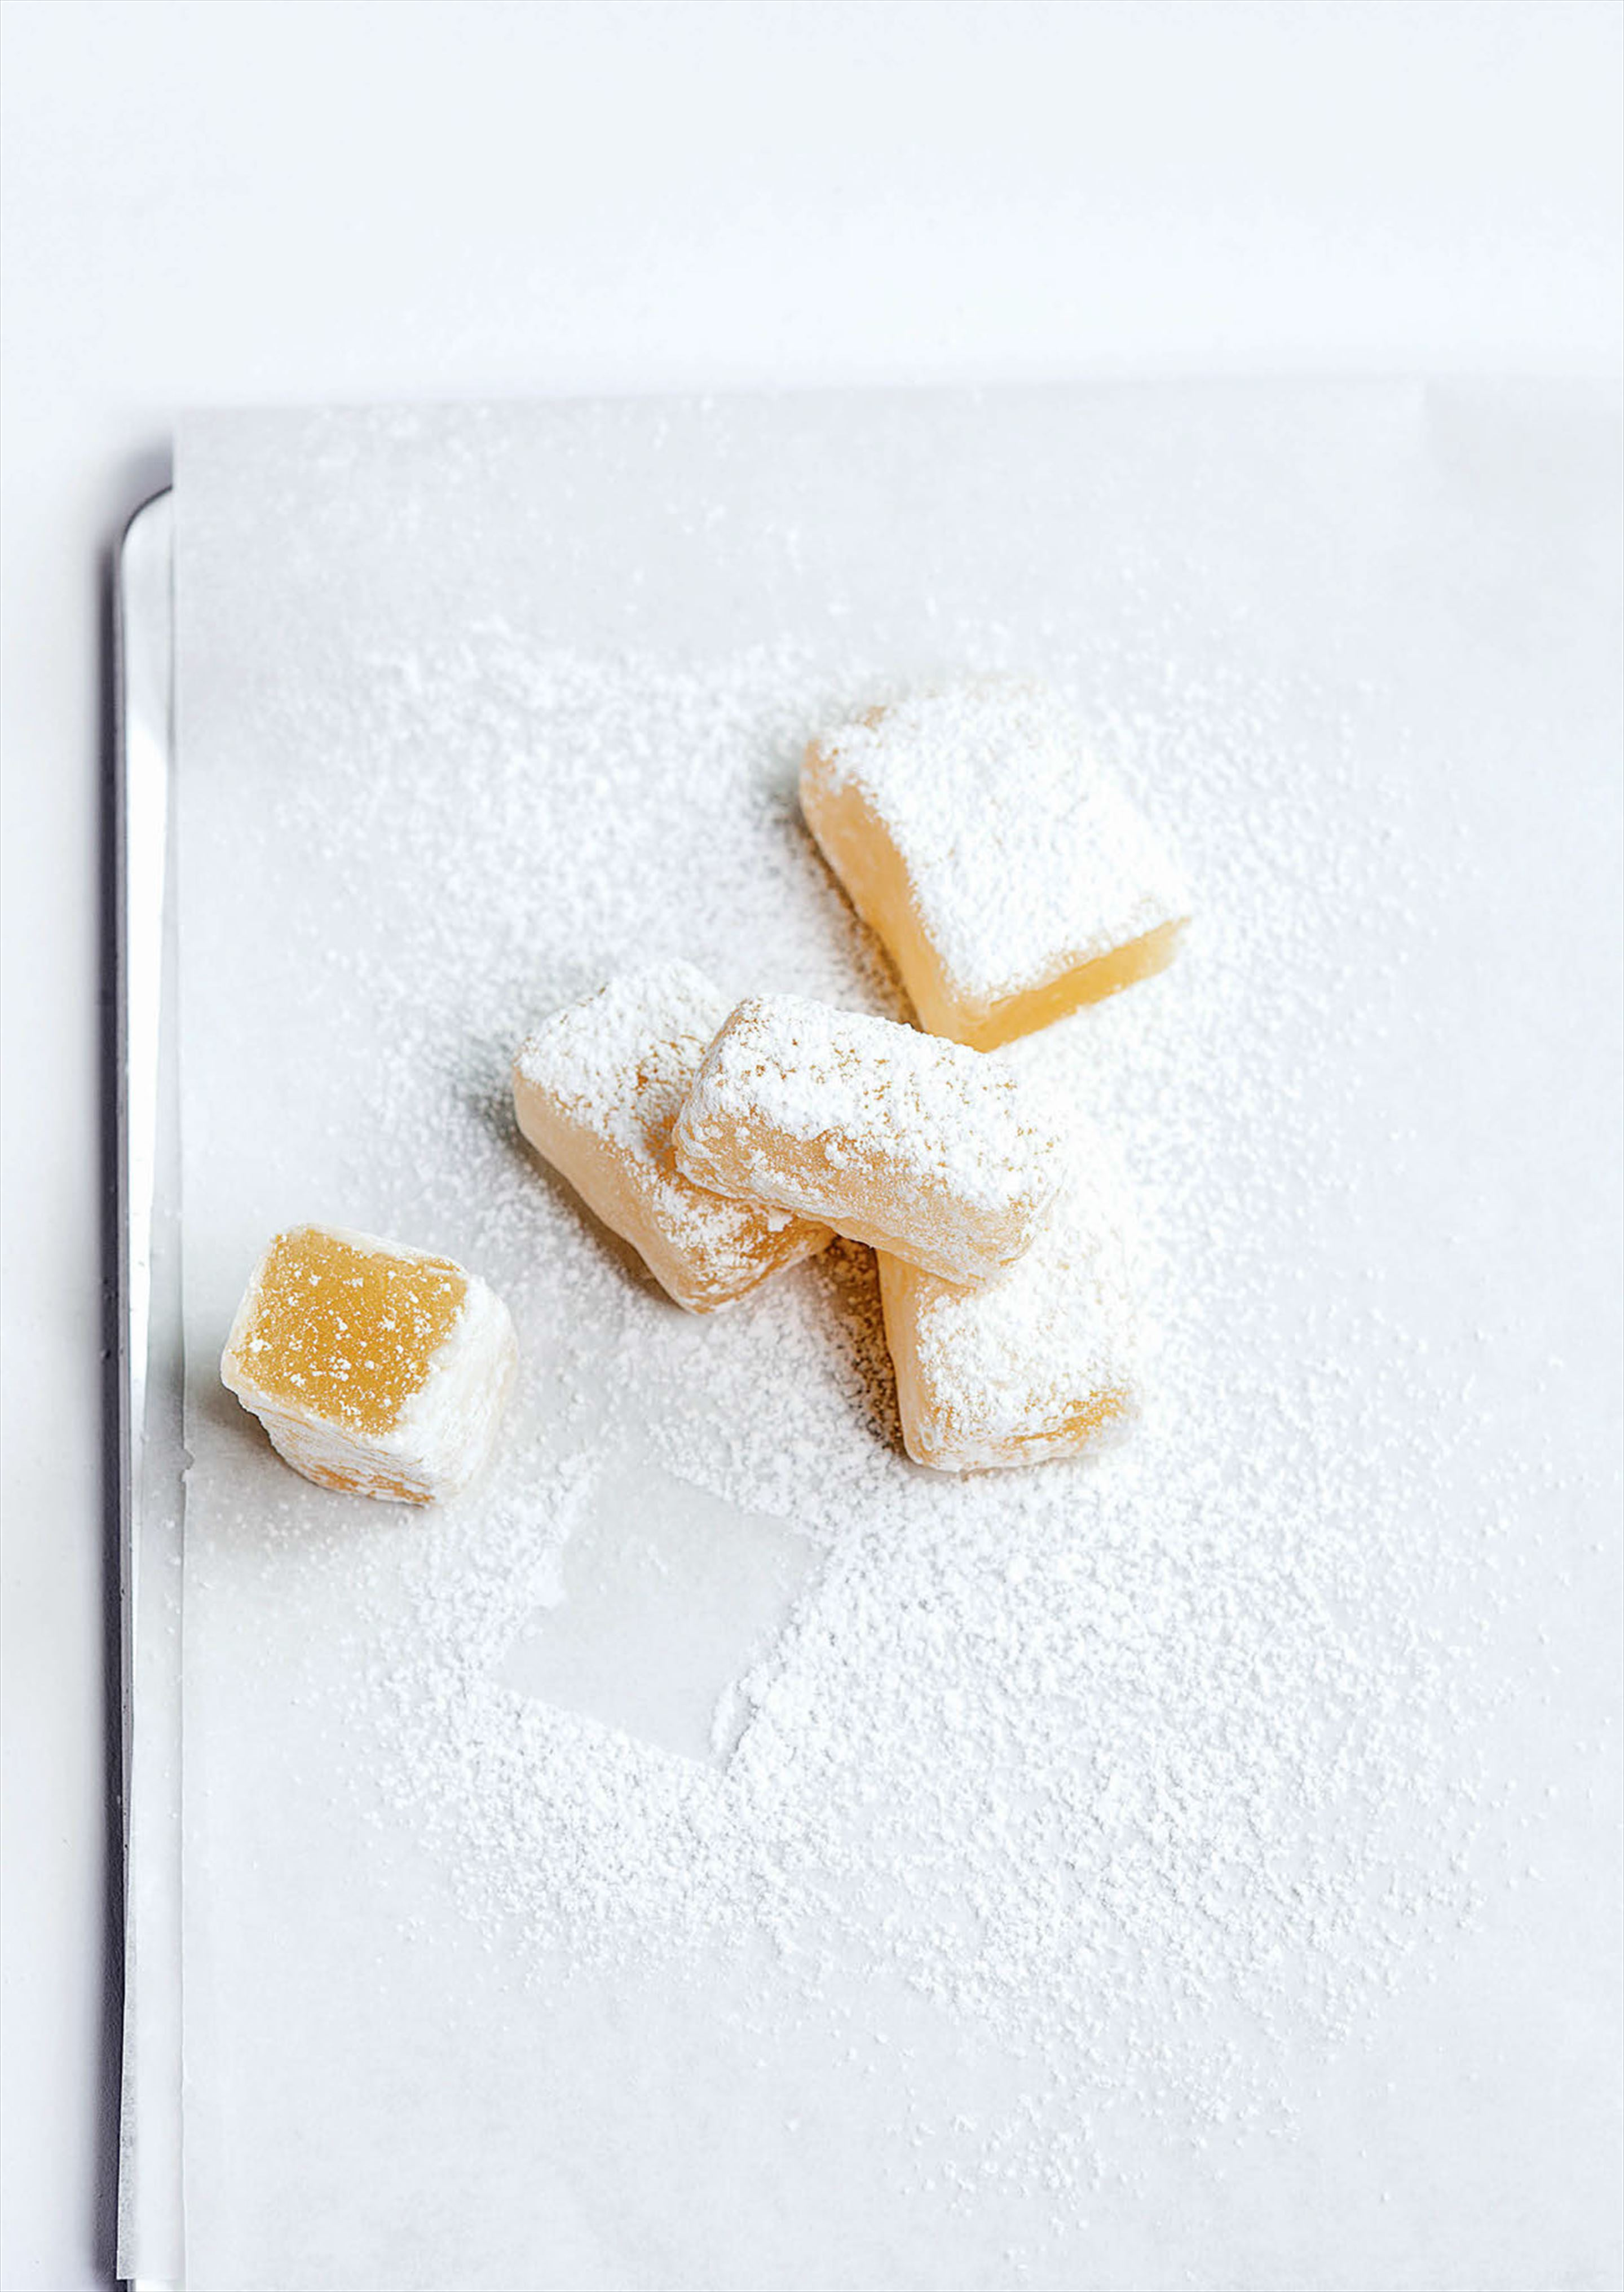 Basic lemon Turkish delight